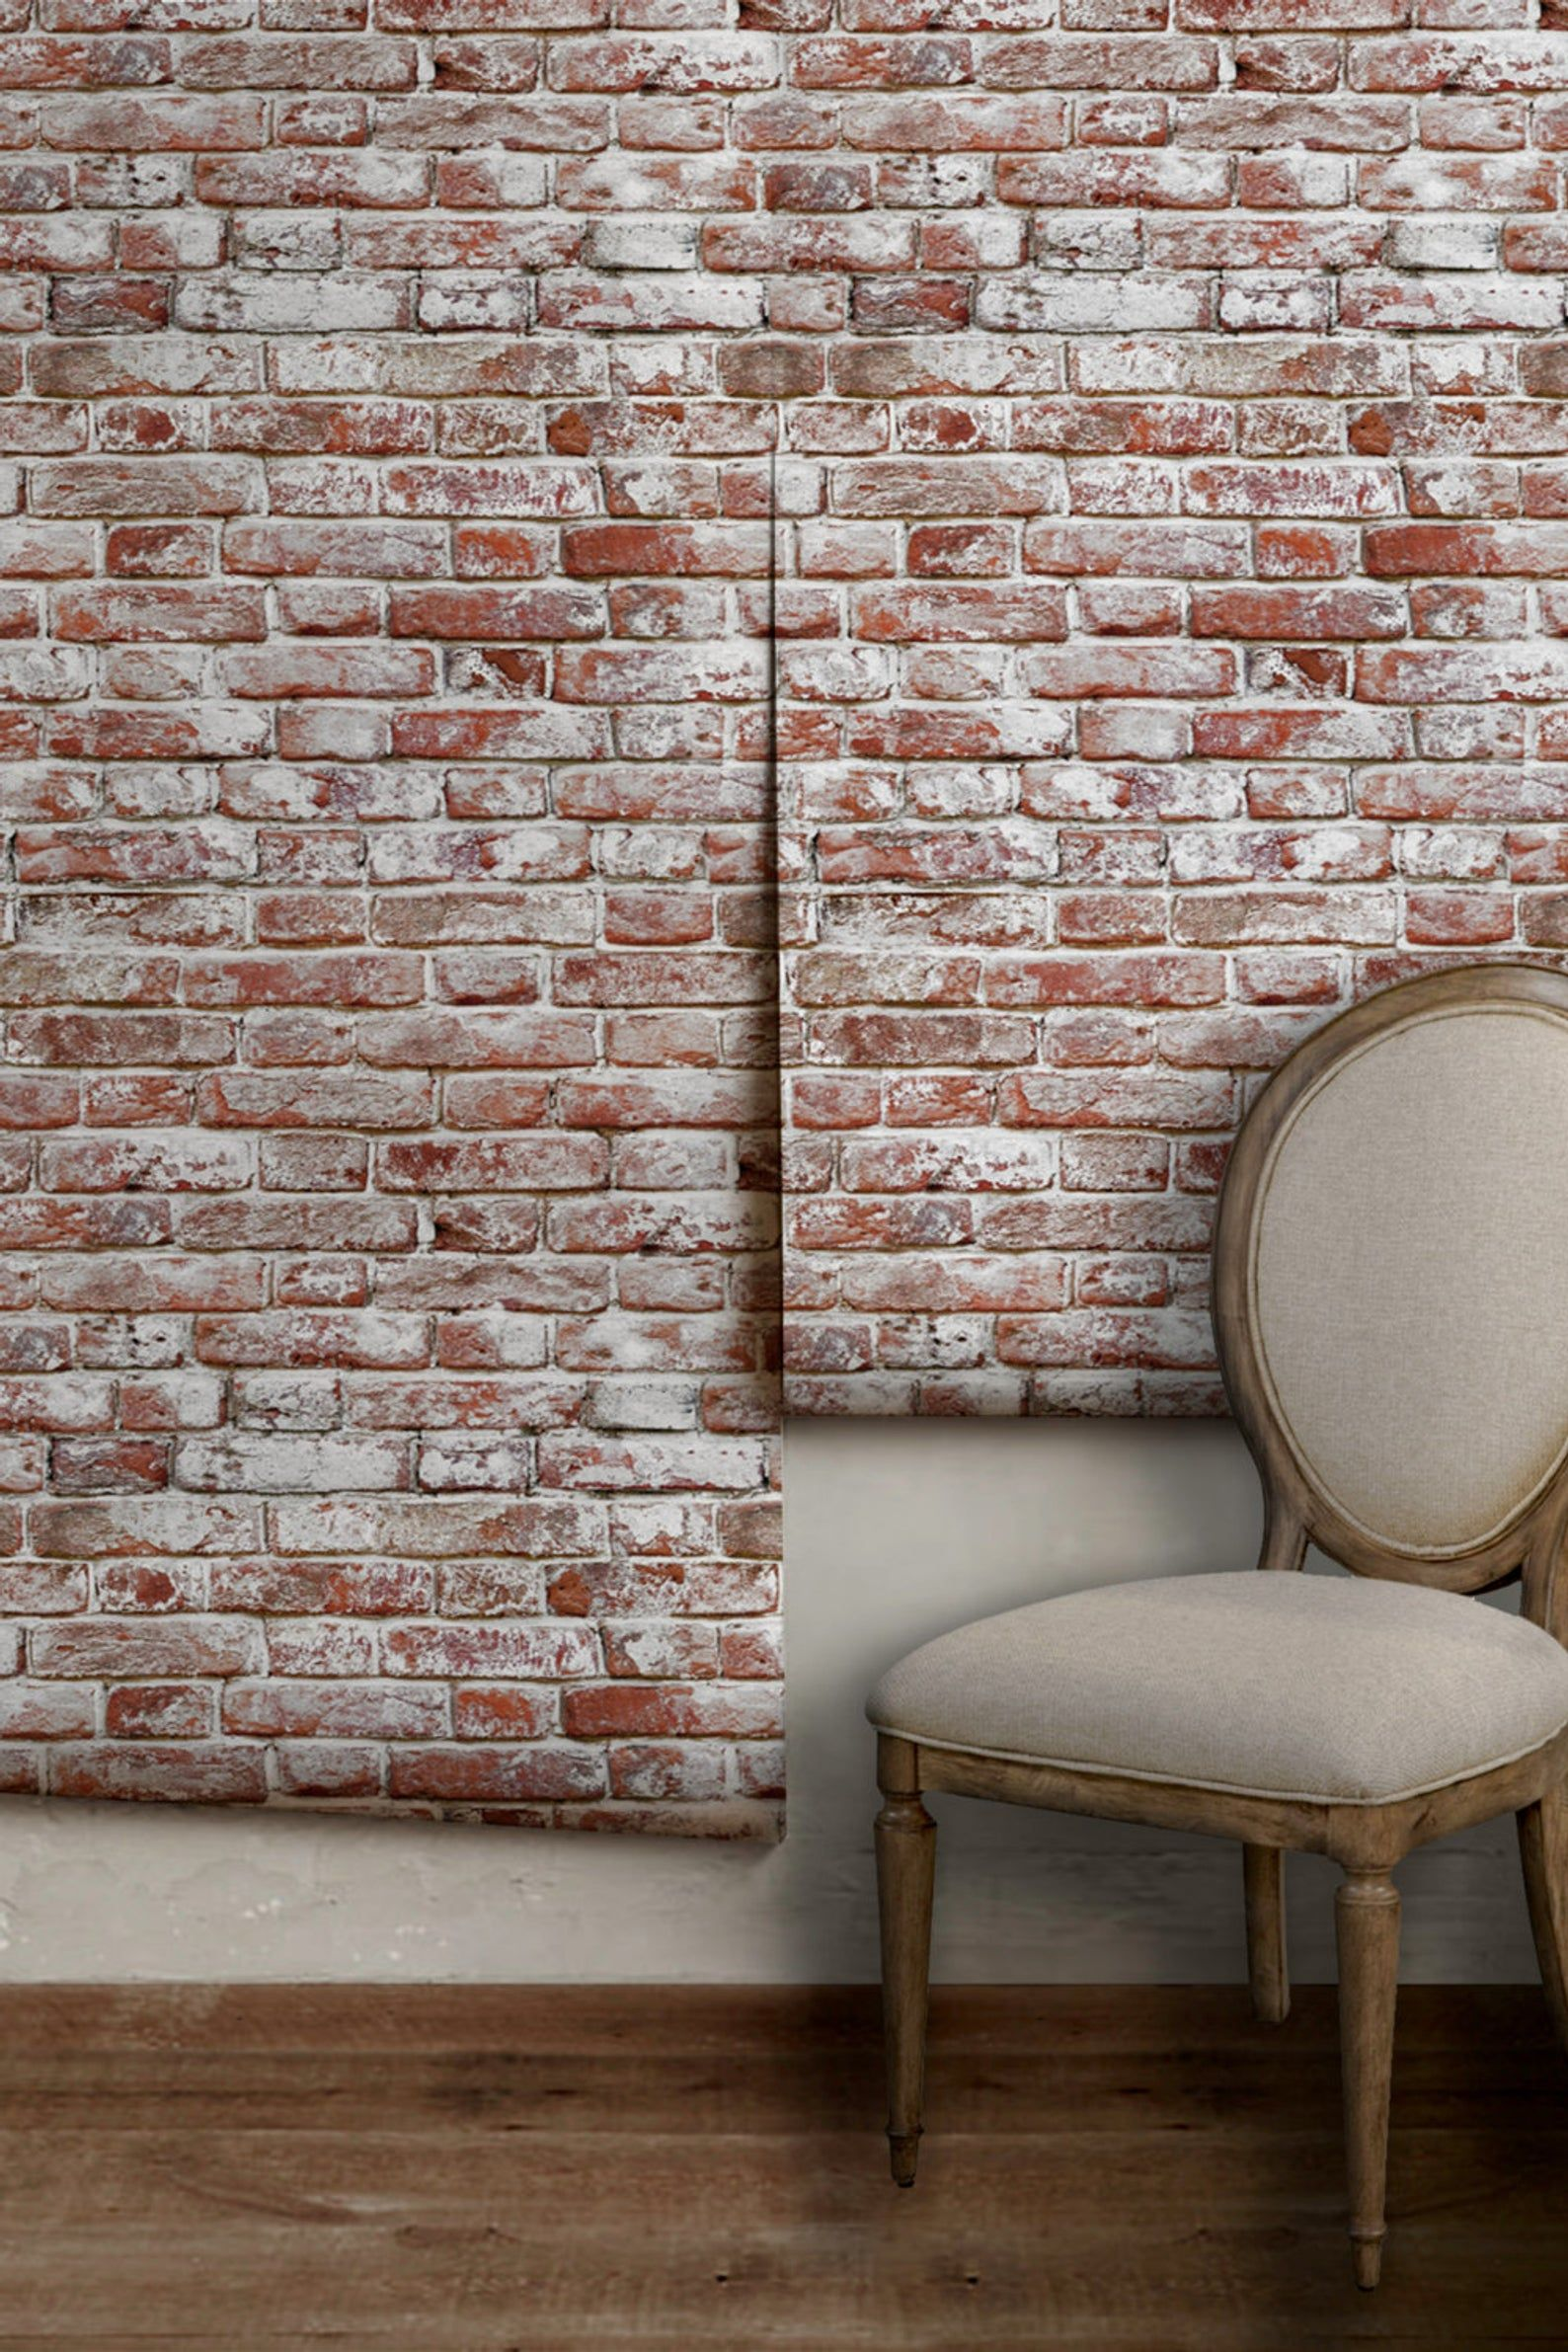 Whitewashed Antique Brick Peel N Stick Or Traditional Wallpaper Made In The Usa Vinyl Free Non Toxic Faux Brick Walls Antique Brick Fake Brick Wall